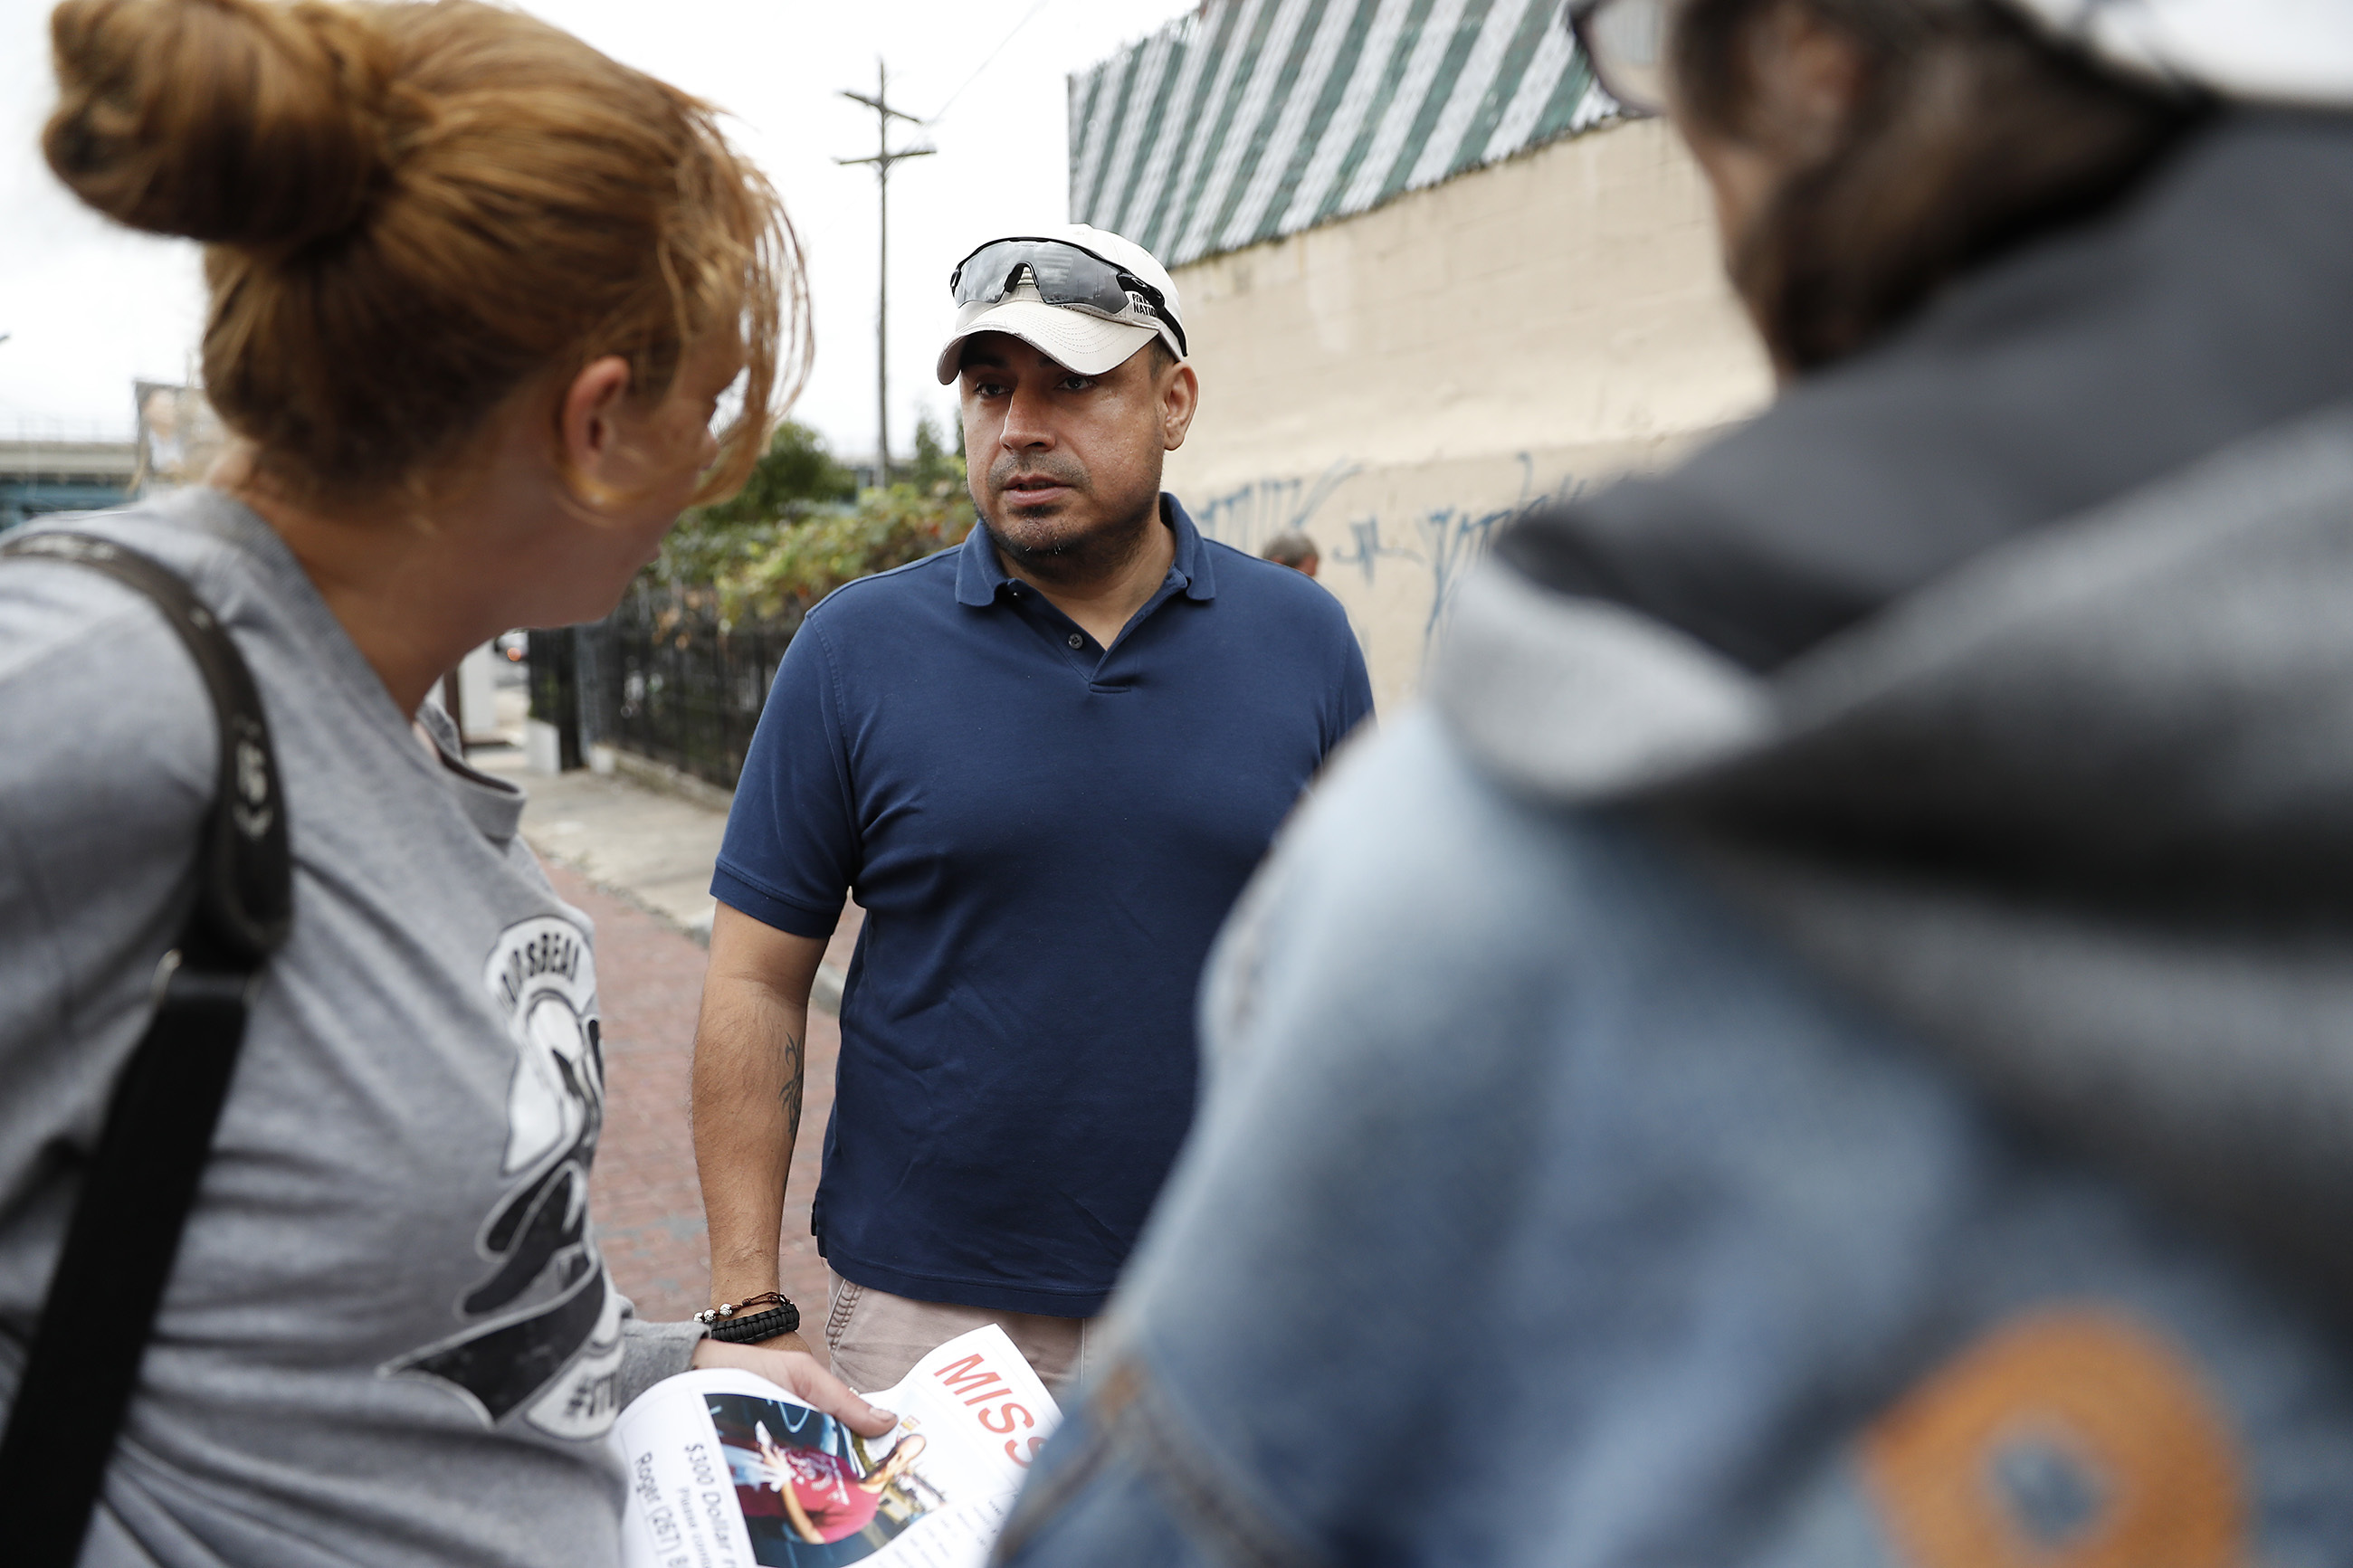 Private investigator Roger Guerra, center, talks to a group about a missing person he is looking for in the Kensington section in Philadelphia, PA on October 12, 2017.